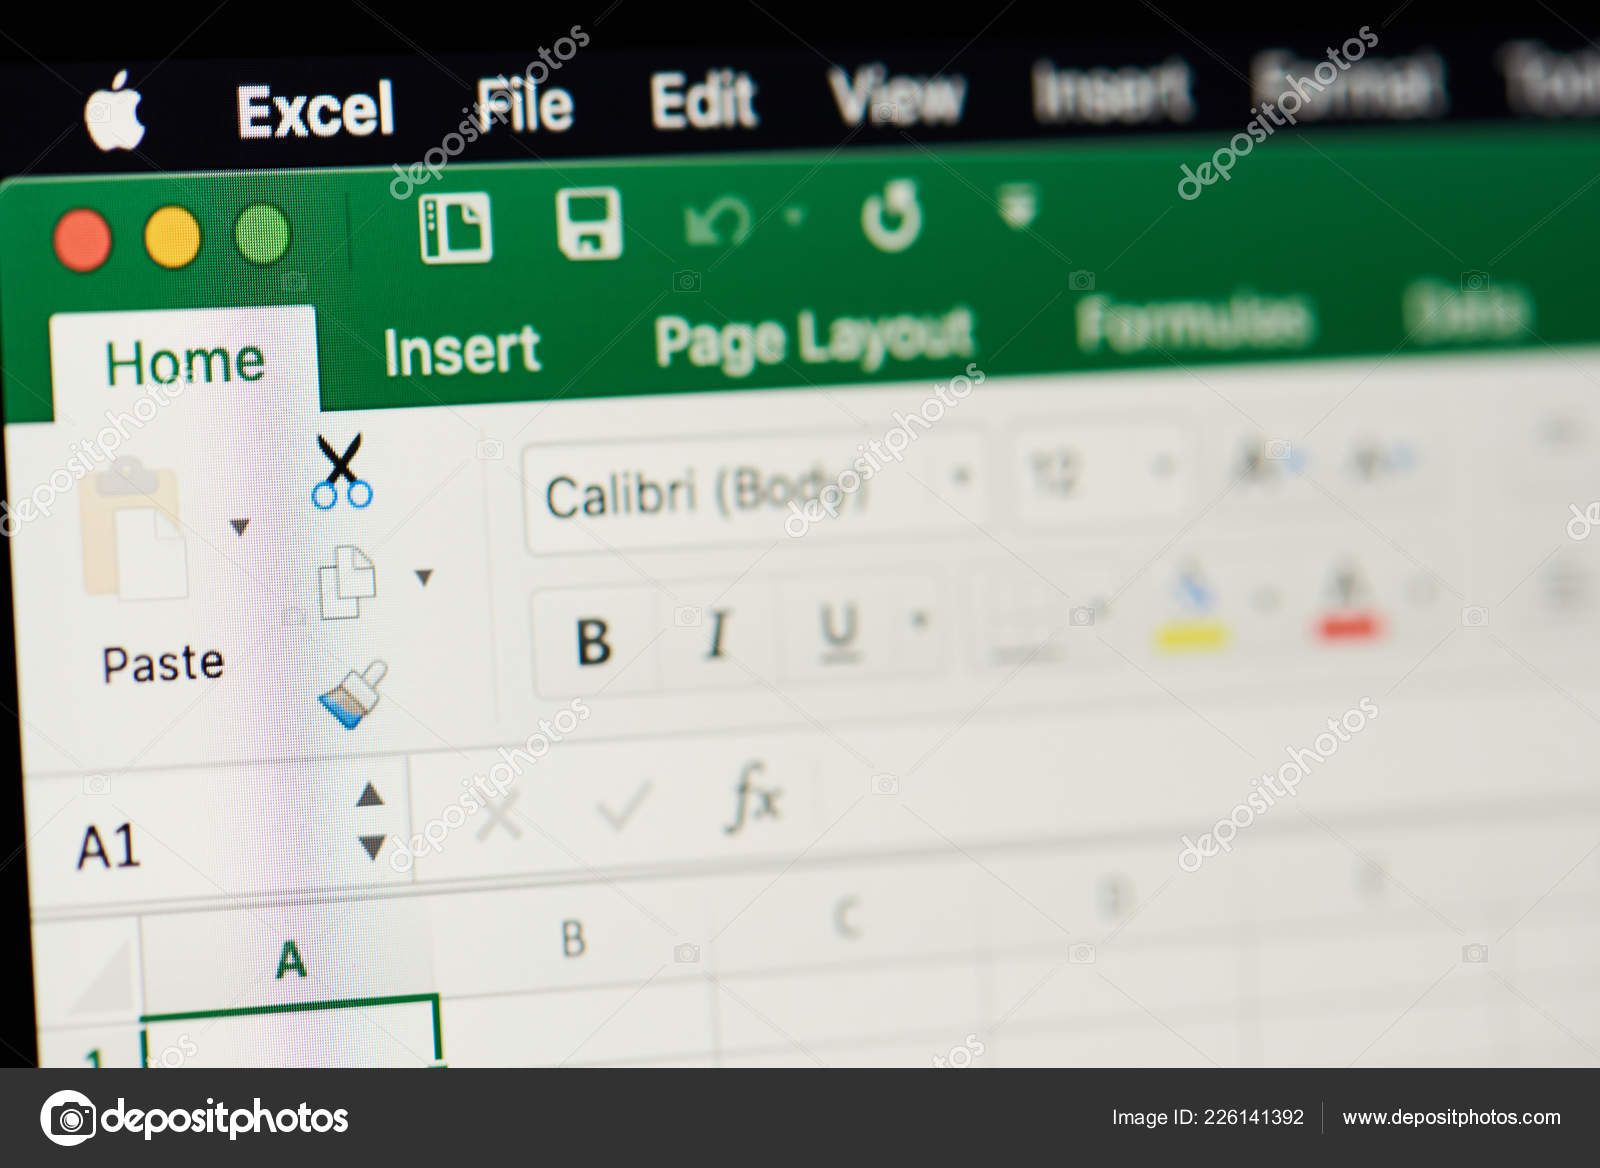 microsoft excel download free 2015